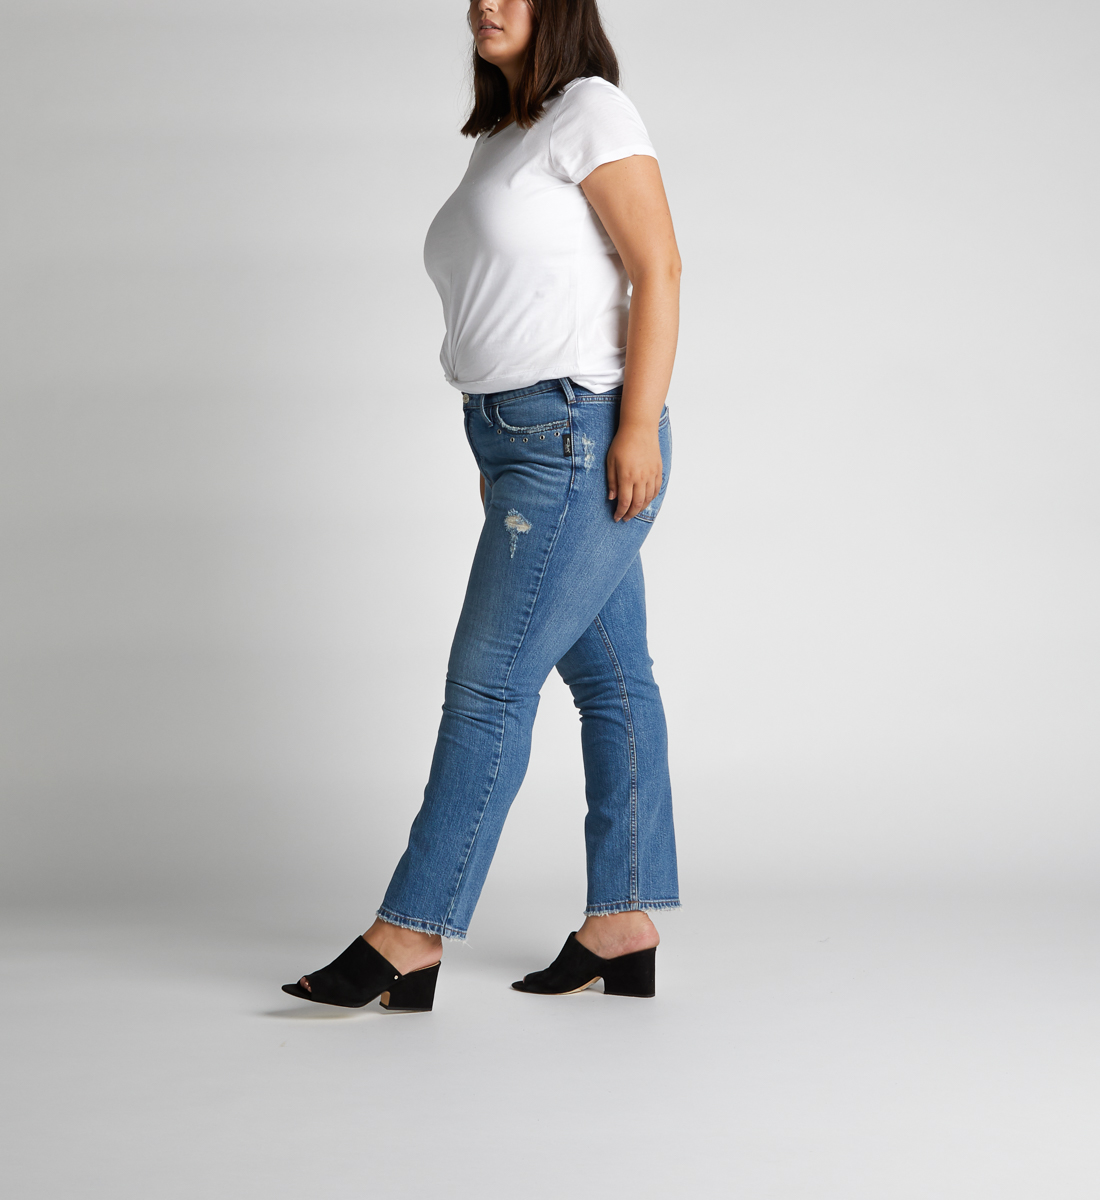 Frisco High Rise Straight Leg Jeans Plus Size, , hi-res